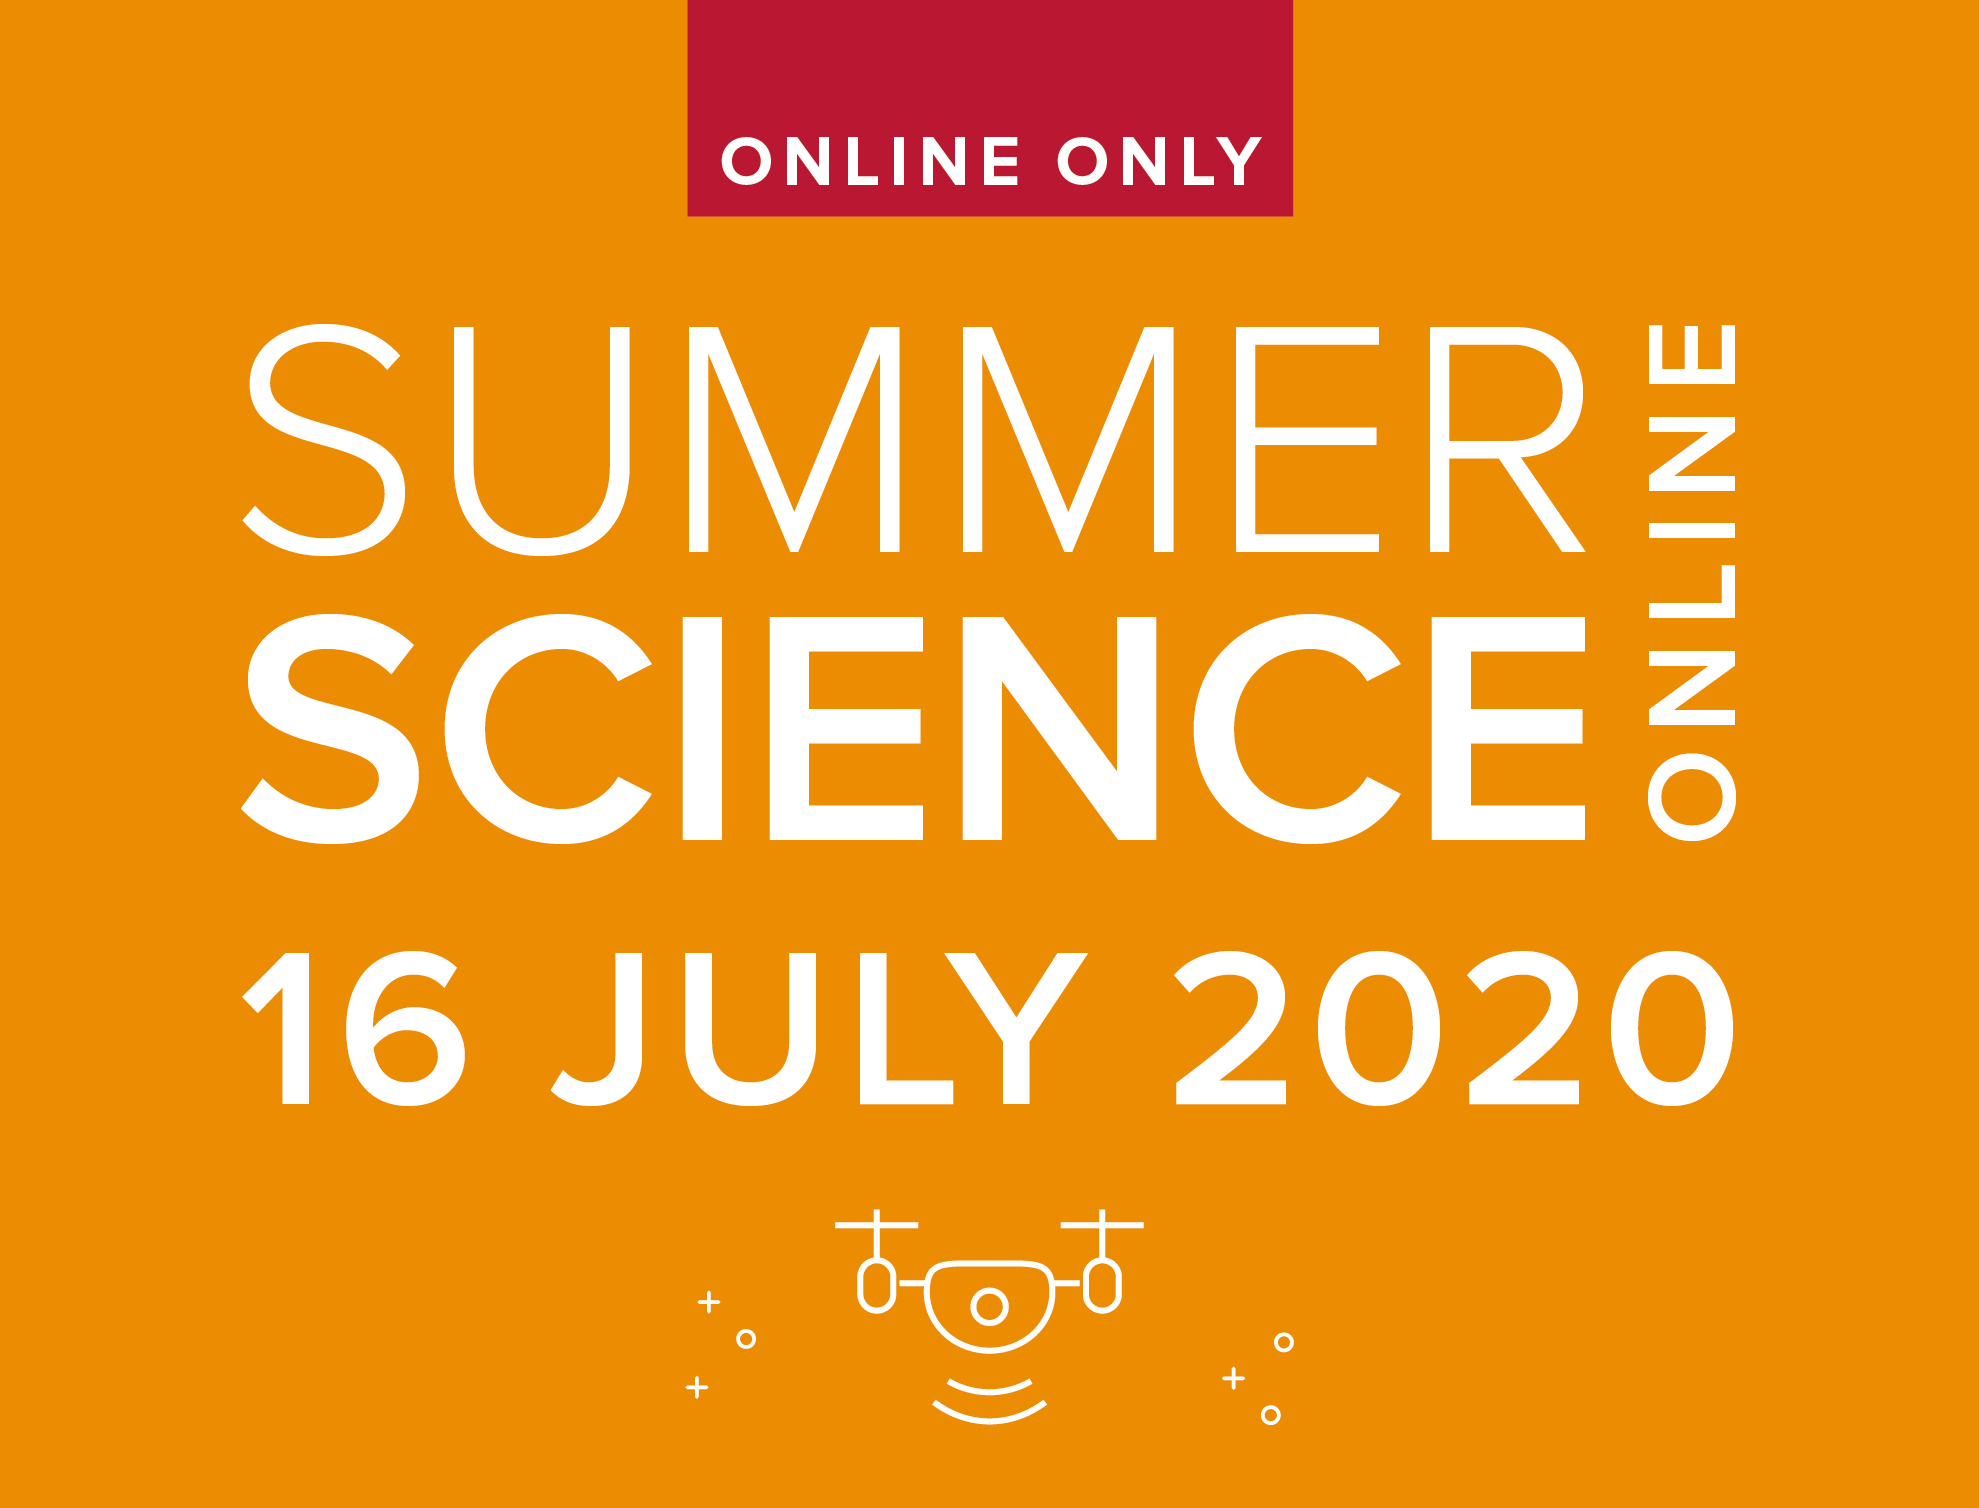 Summer Science Online 16 July 2020